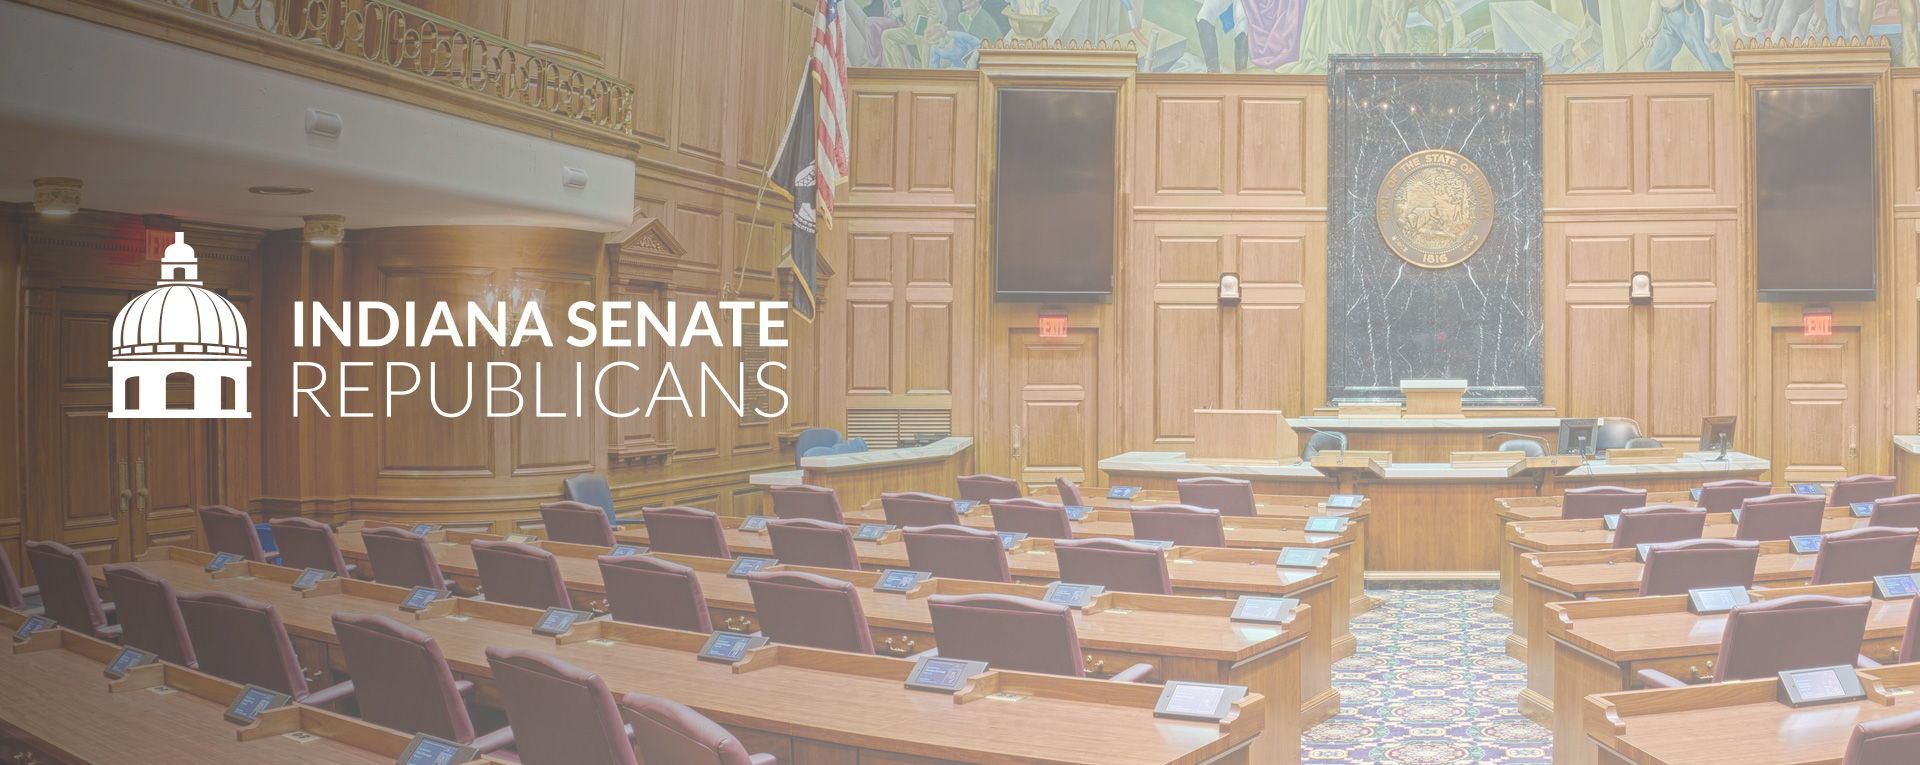 Indiana Senate Republicans